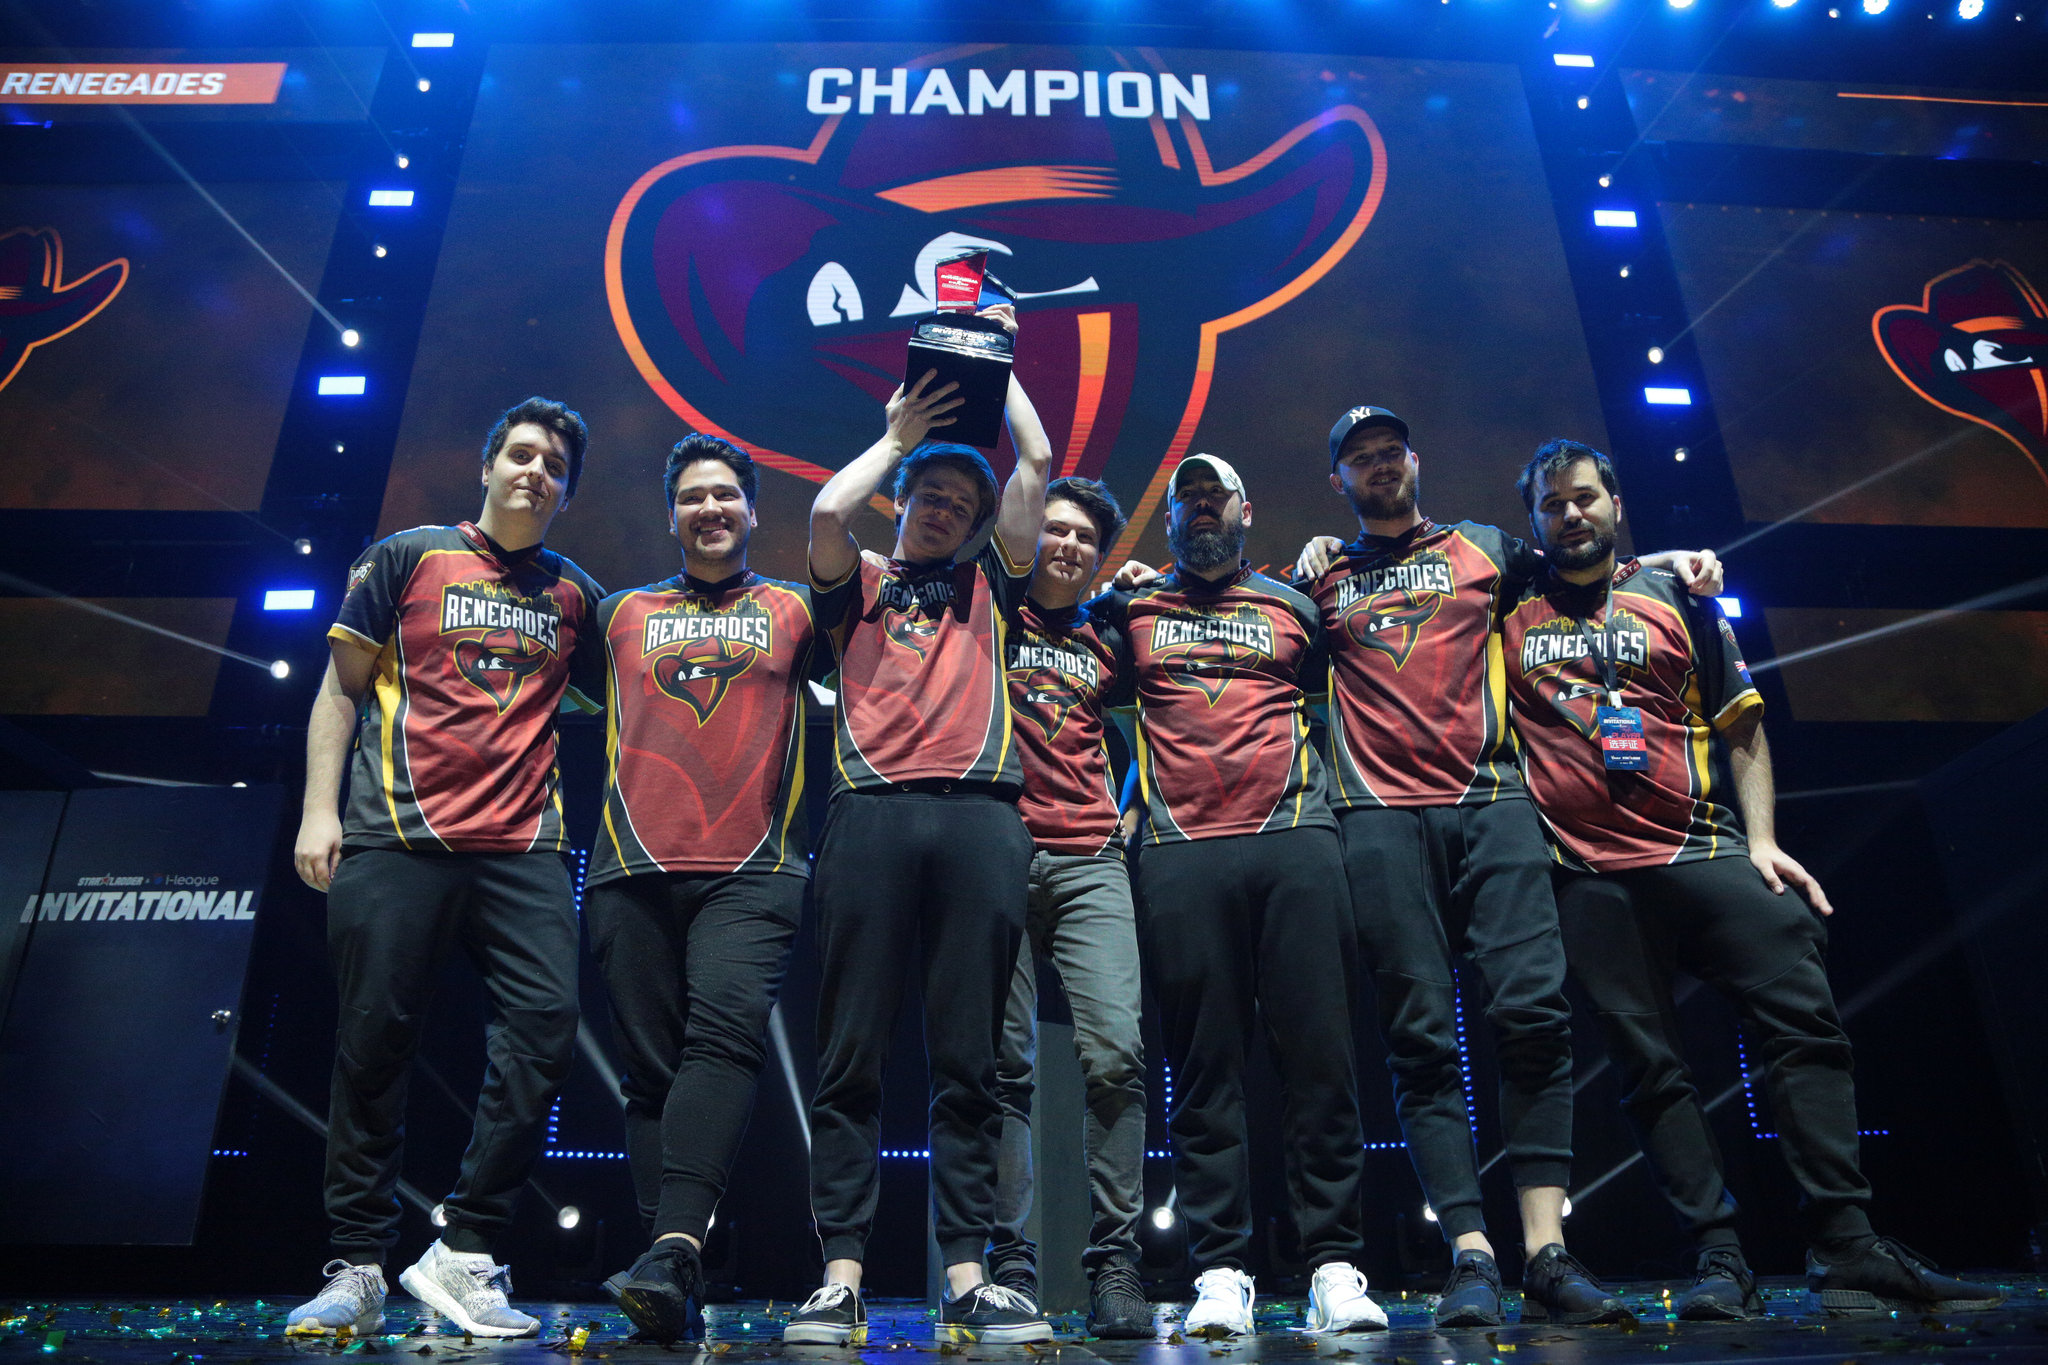 Renegades win Starladder